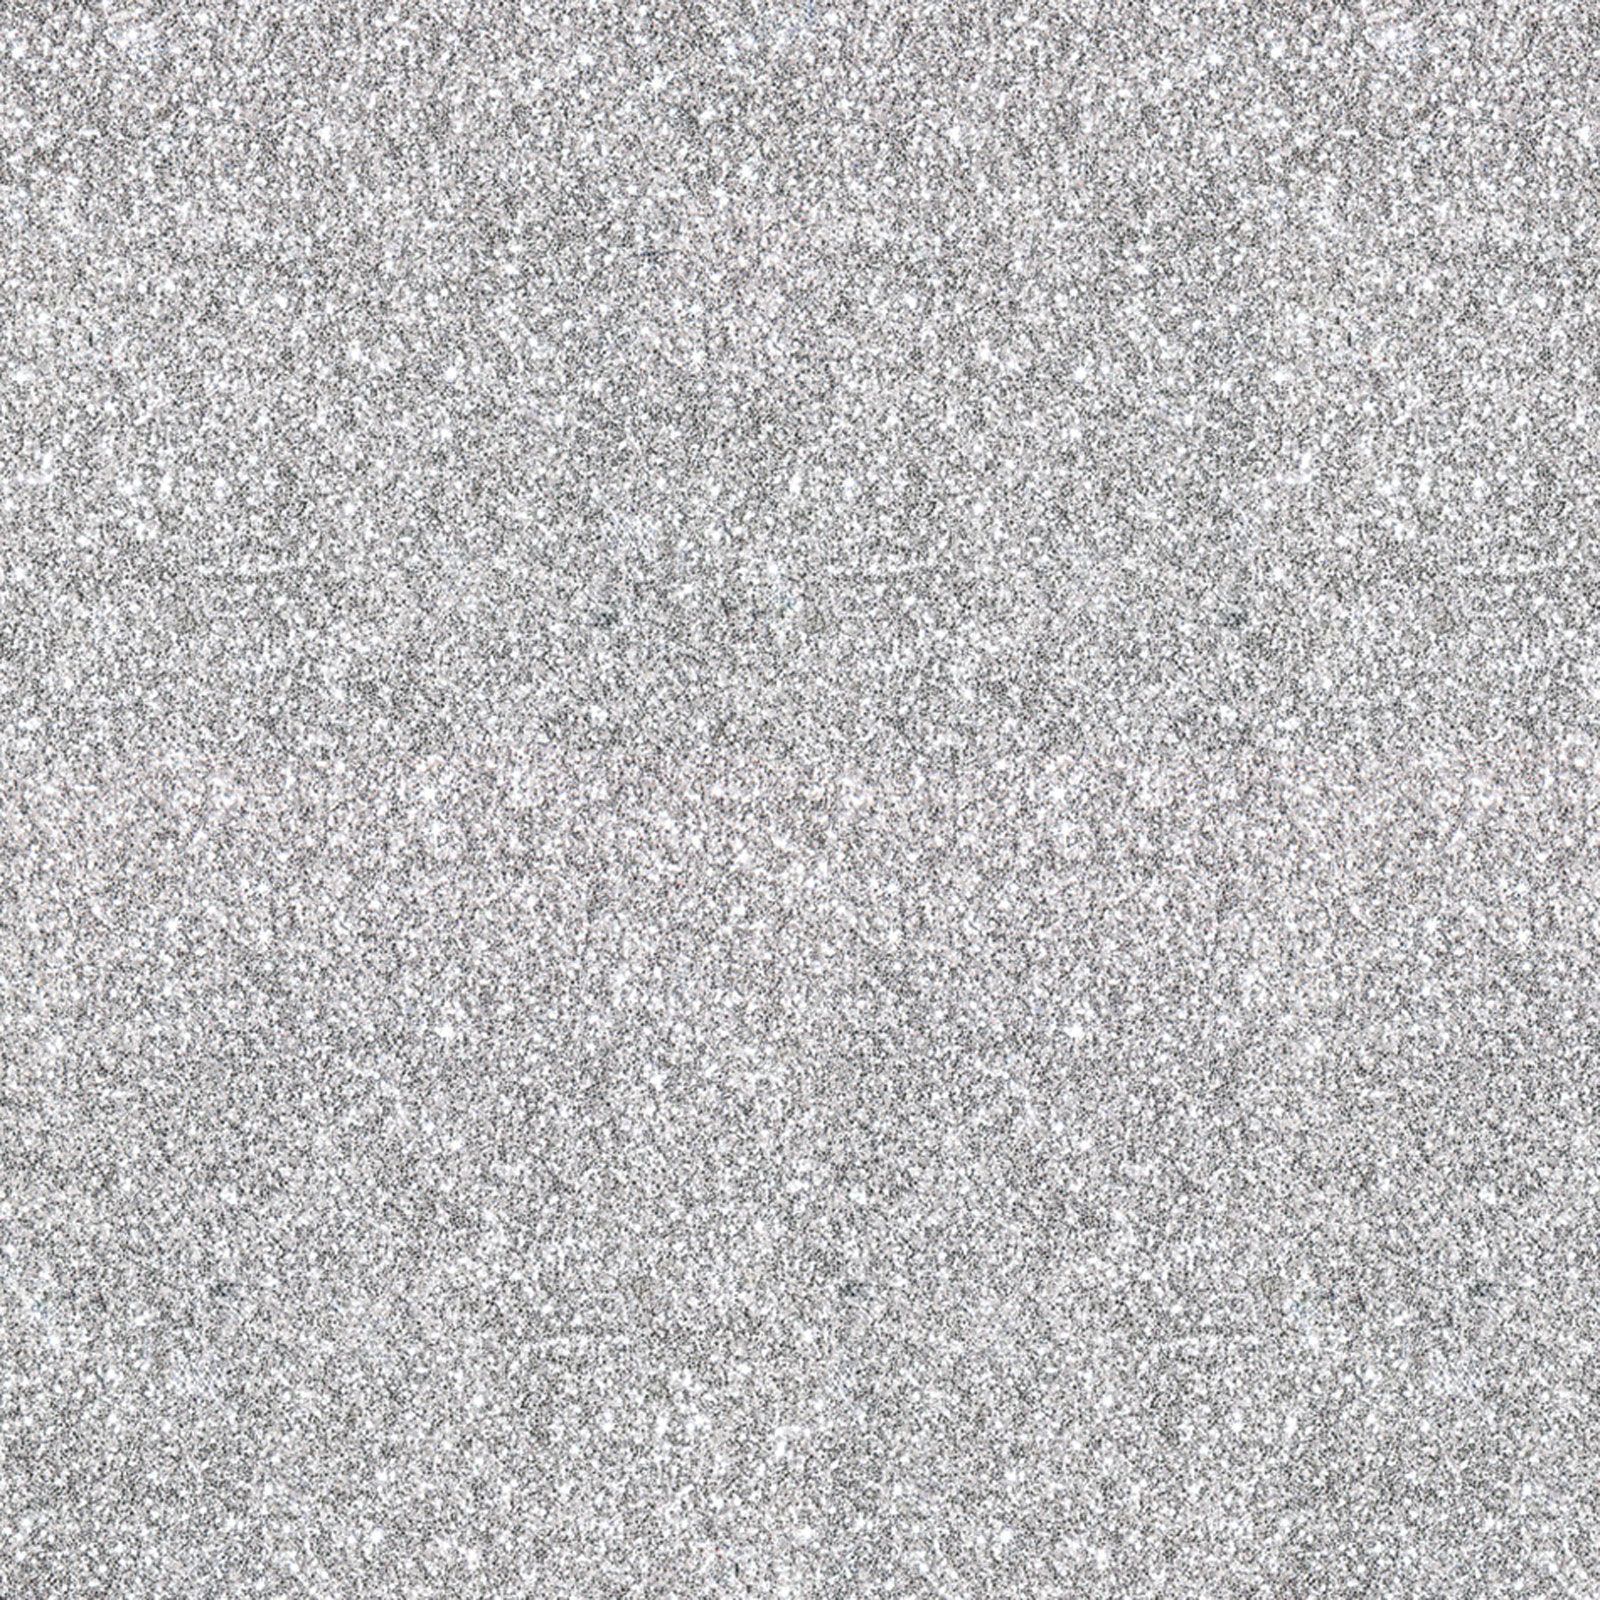 SPARKLE GLITTER WALLPAPER IDEAL FOR FEATURE WALLS - PINK GOLD SILVER BLACK TEAL : eBay